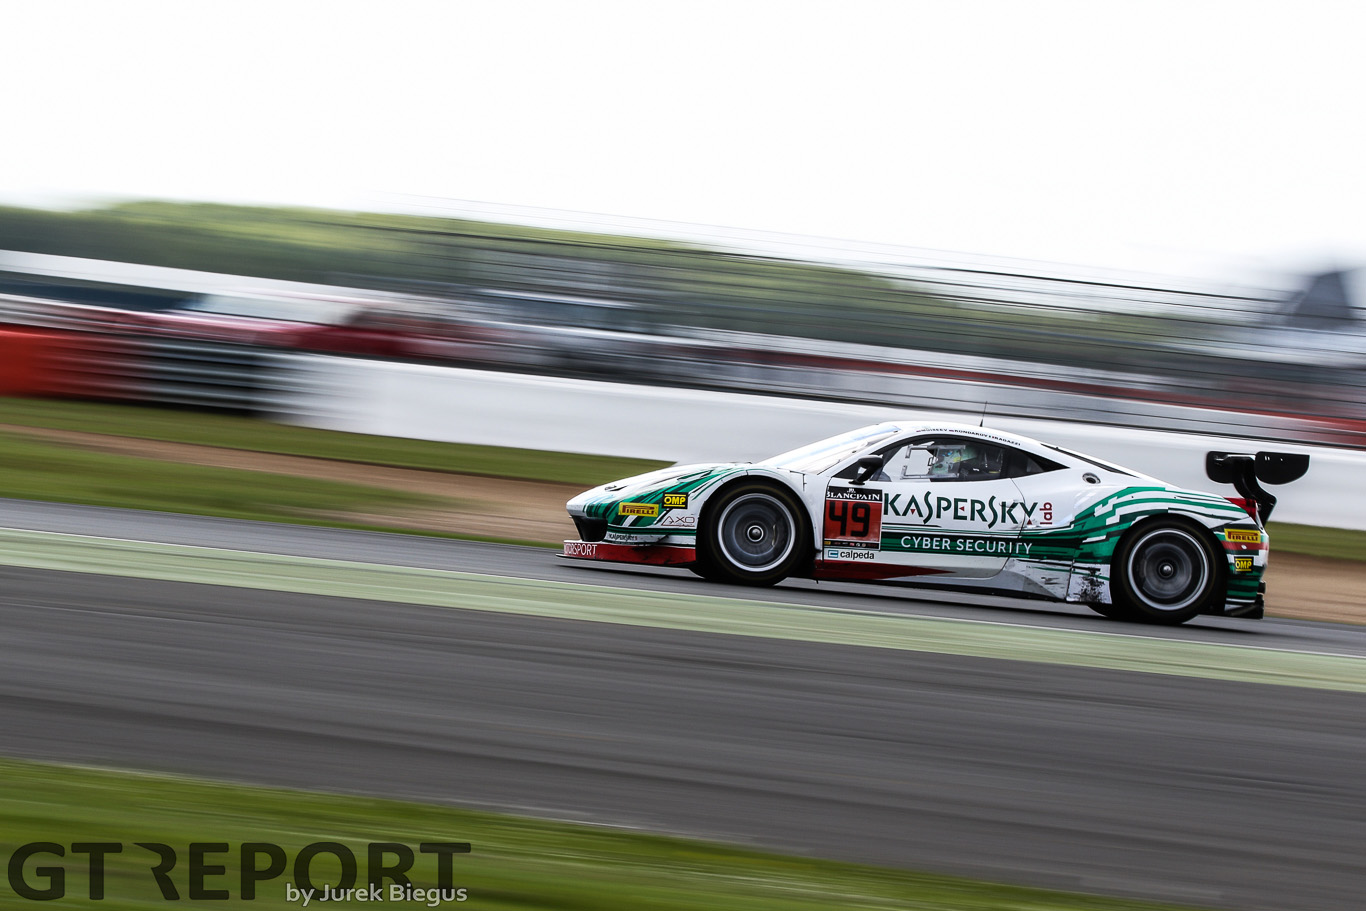 Kaspersky aiming high with Ferrari